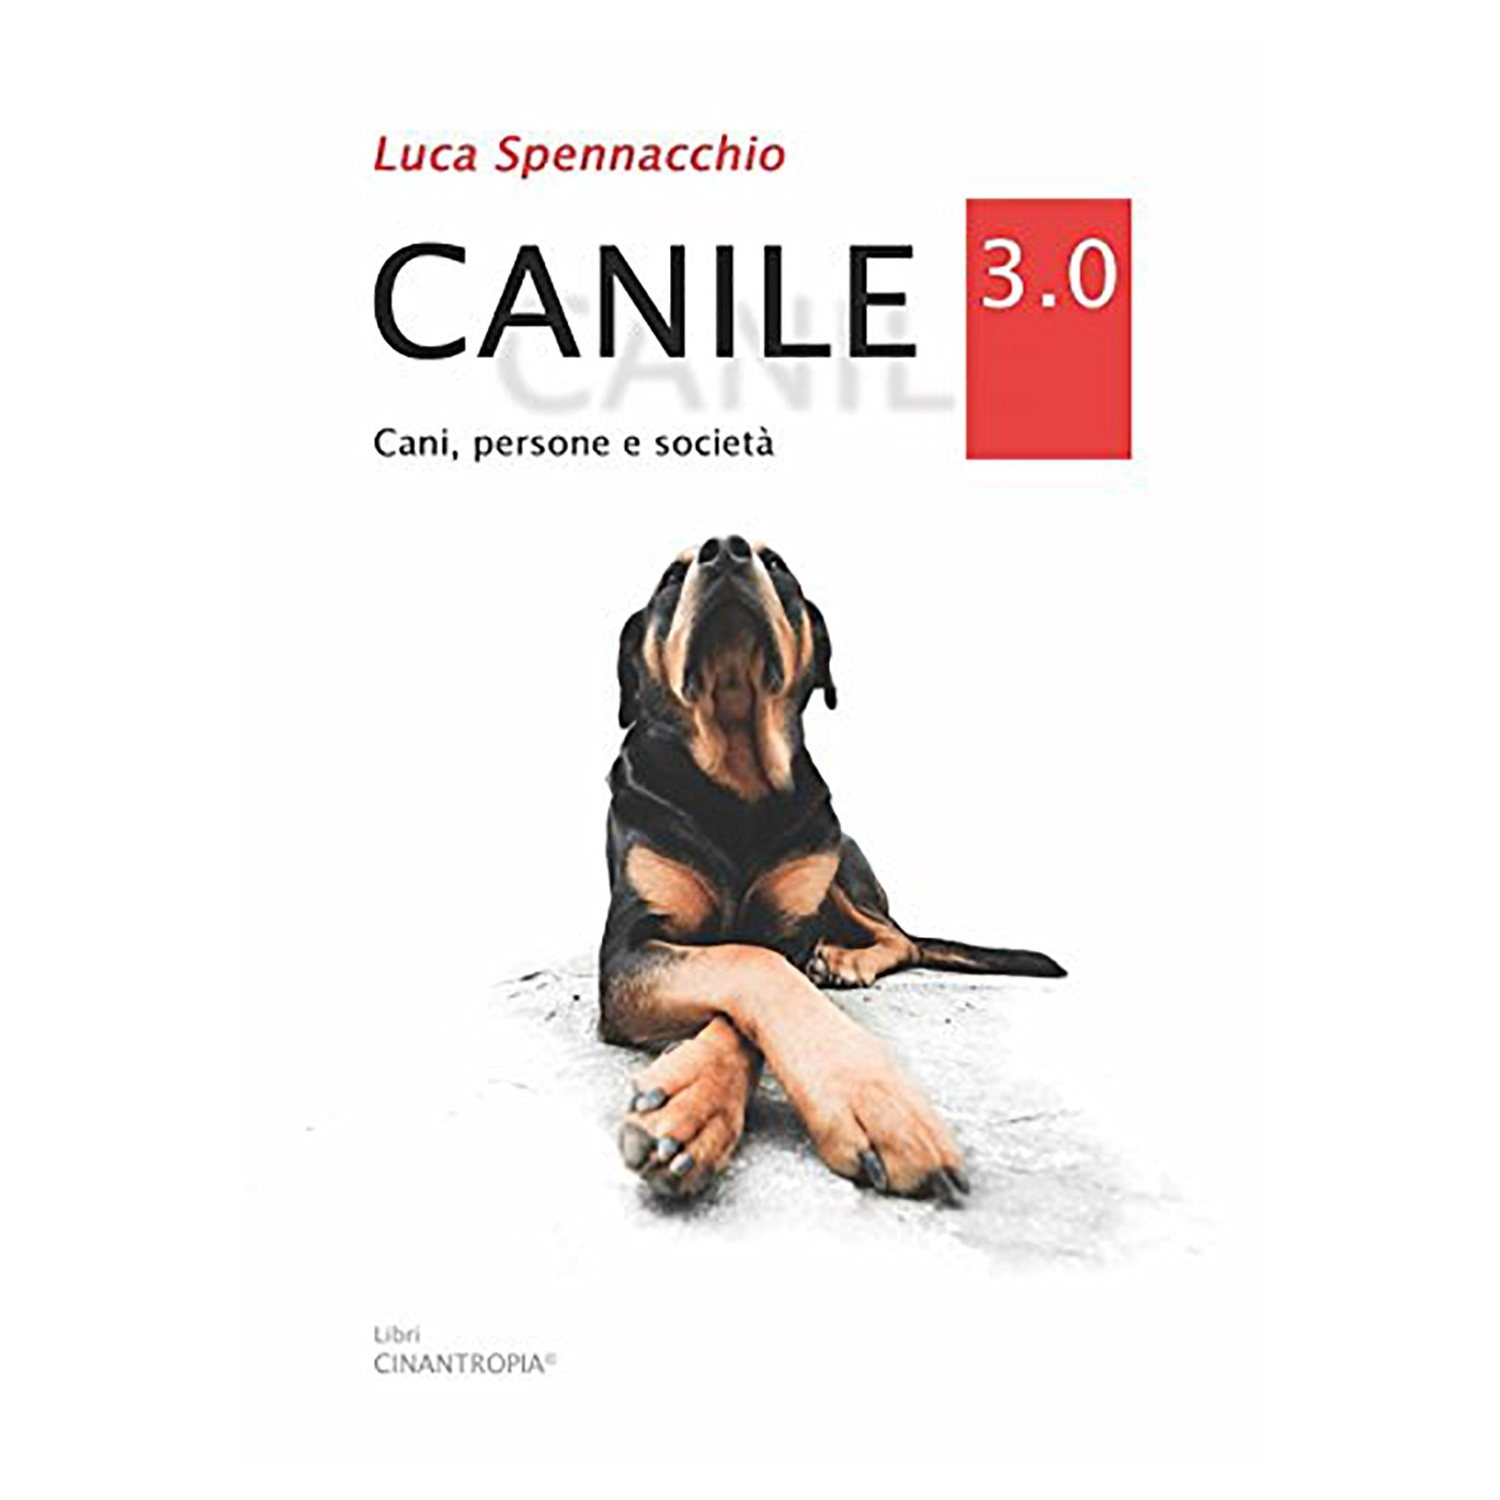 Canile 3.0 (italian only)